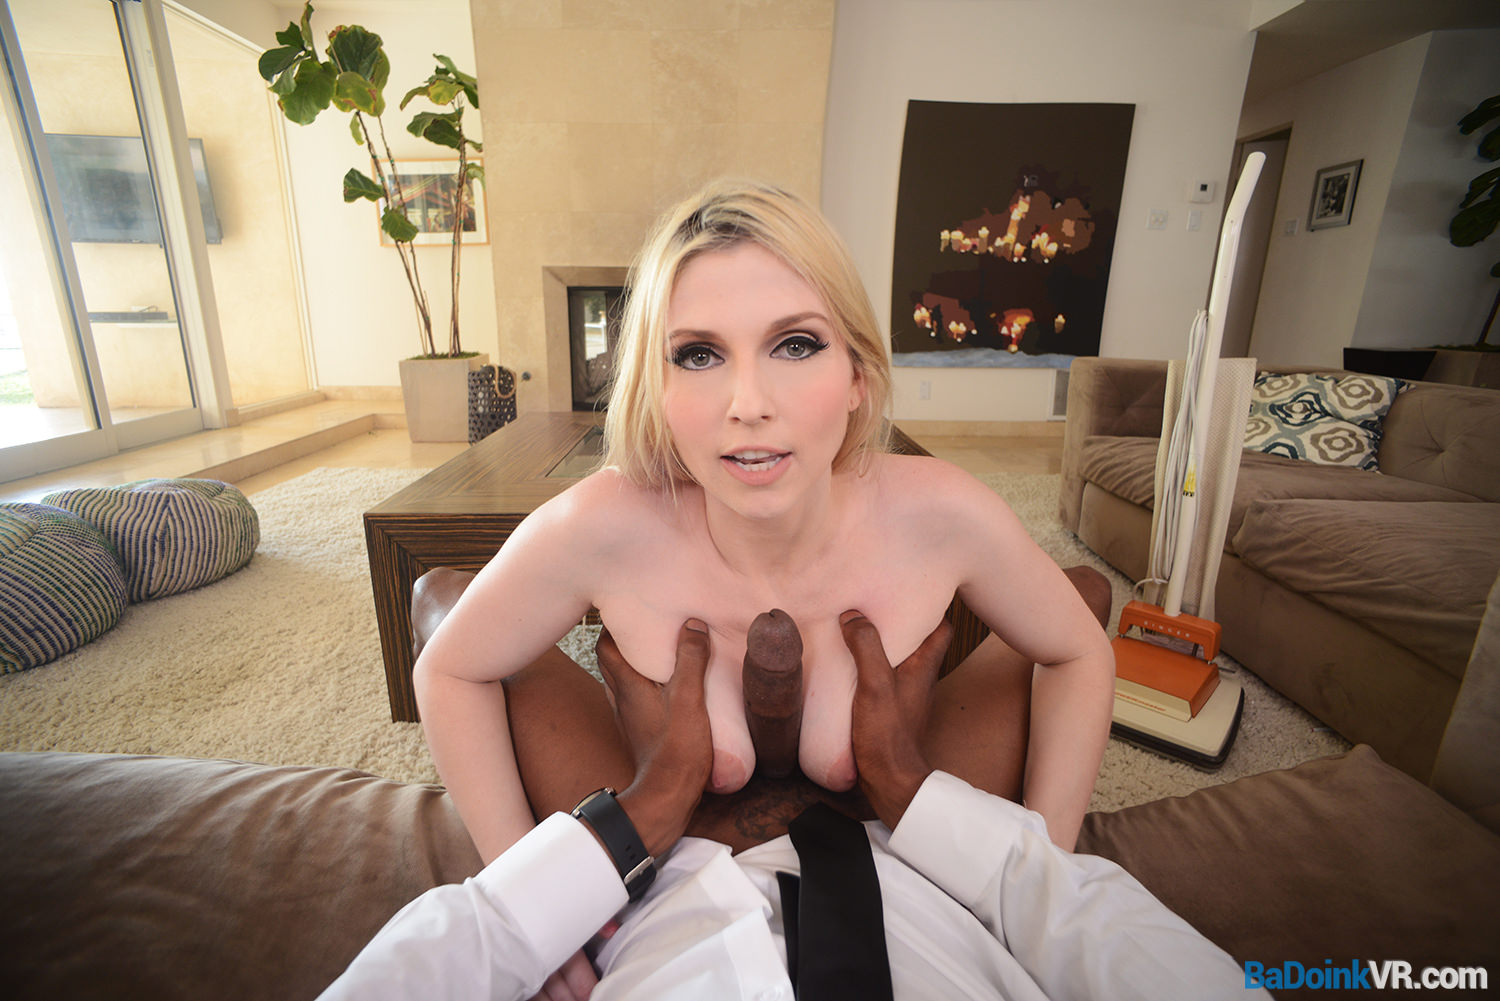 Badoink vr your bbc for horny housewife christie stevens vr 10